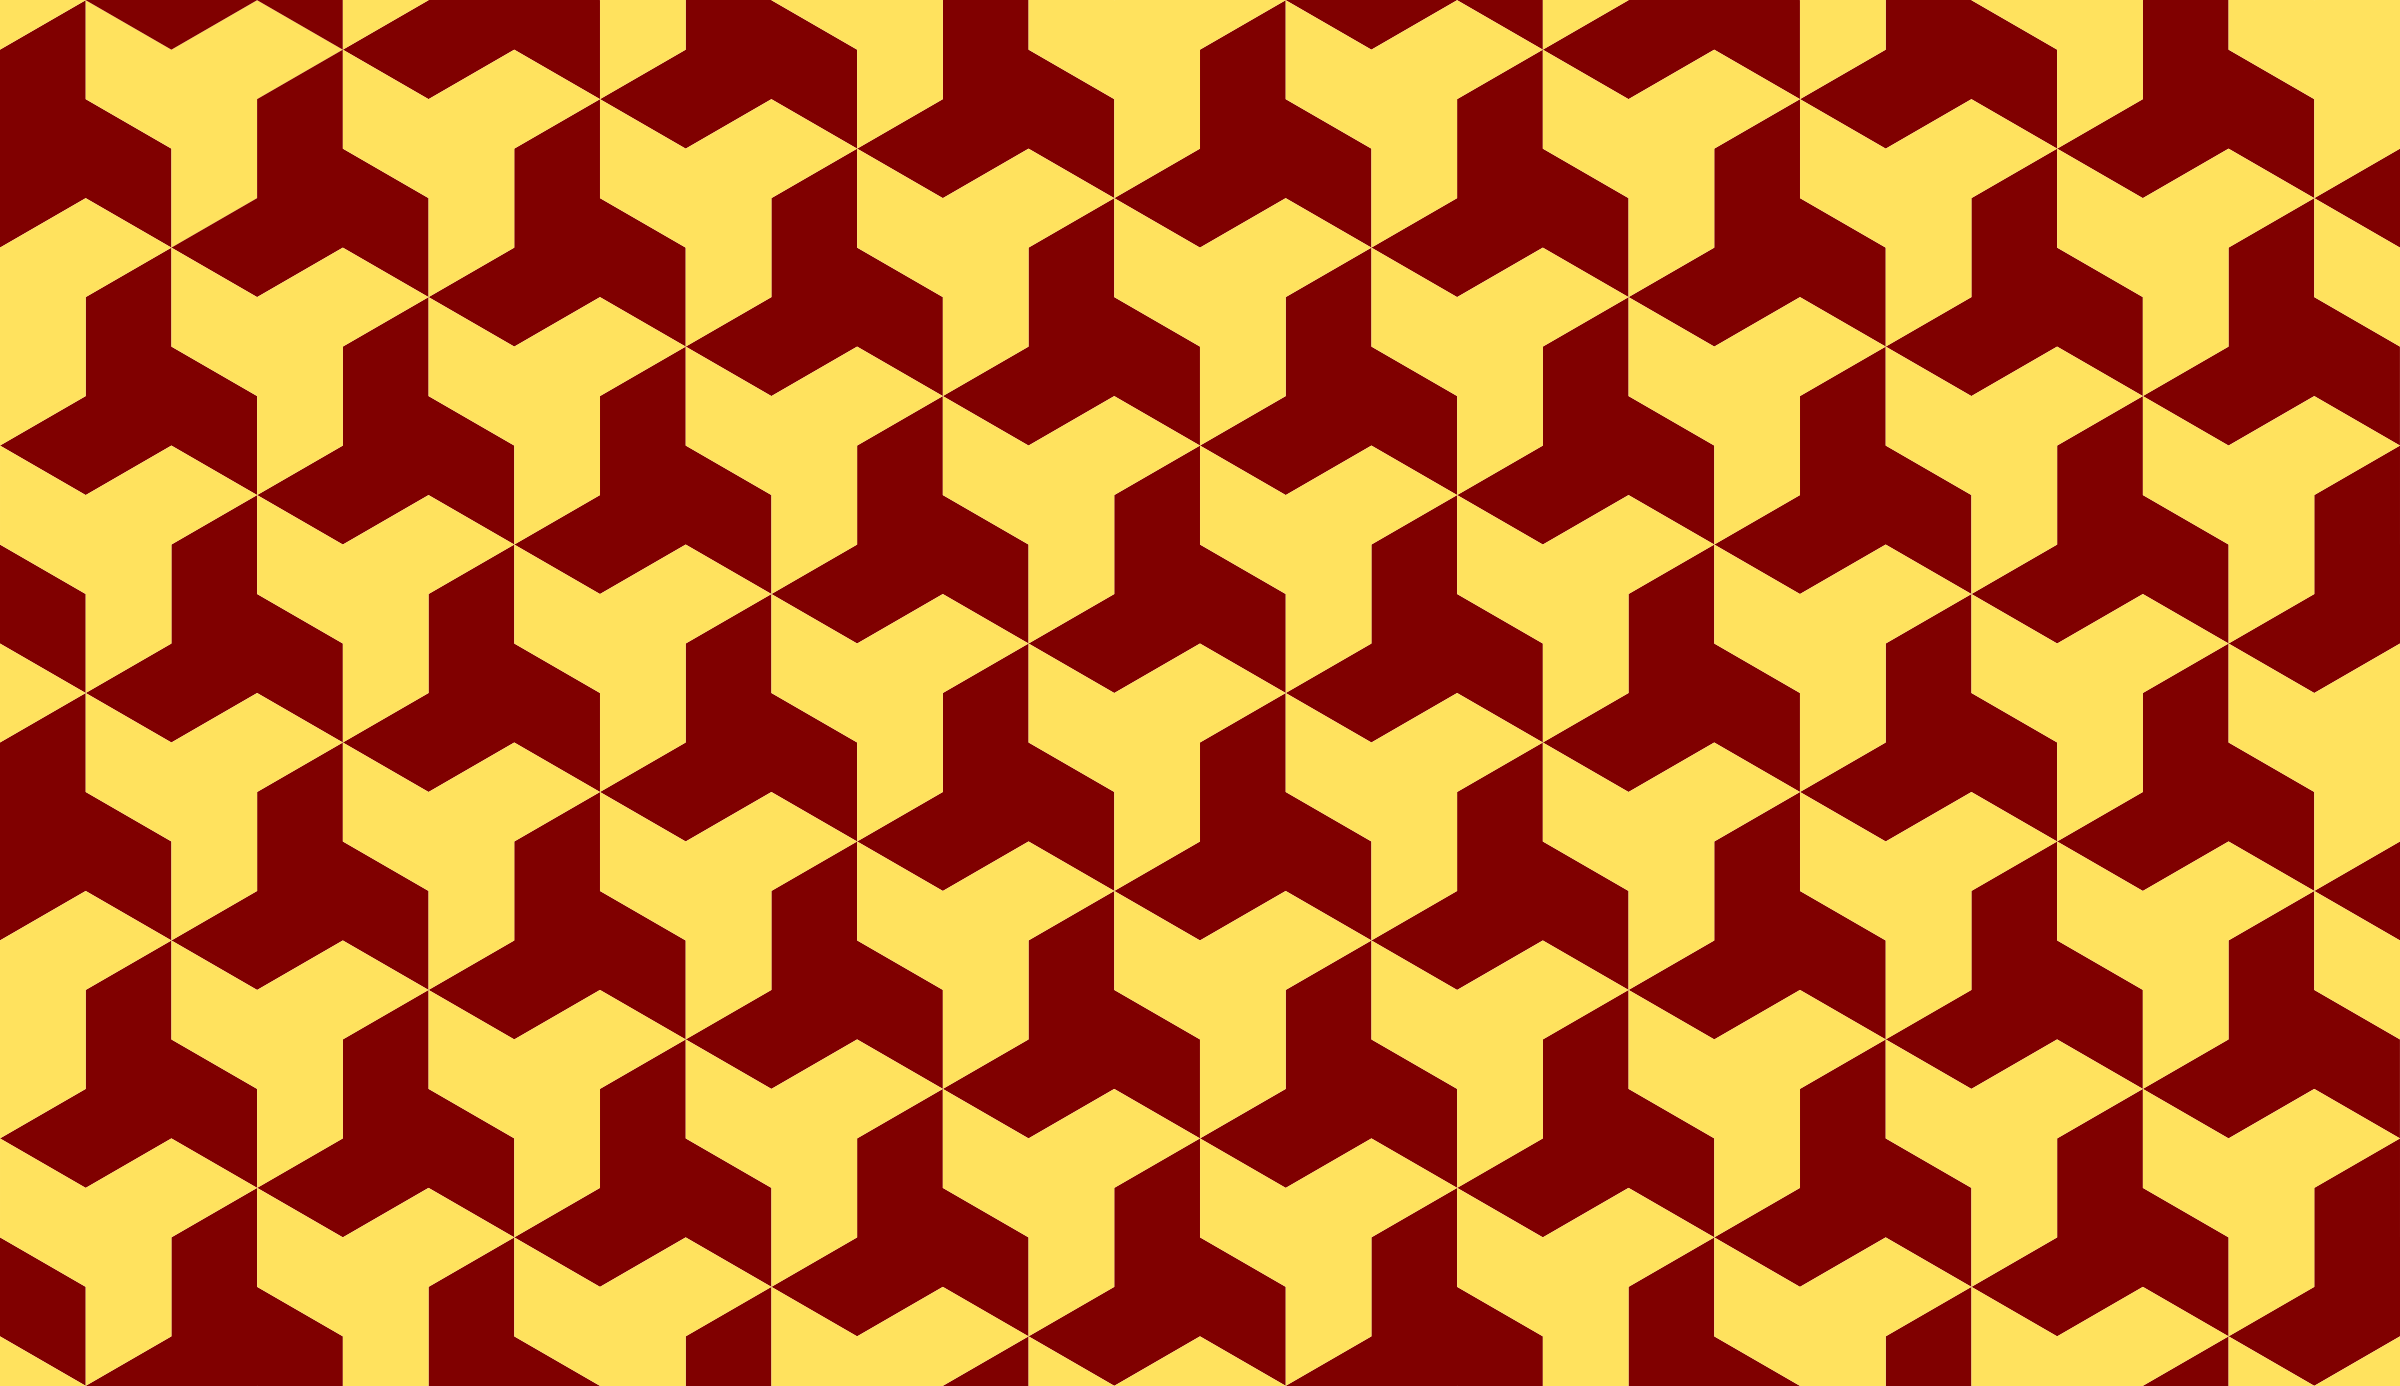 Tessellation 4 (colour 2) by Firkin